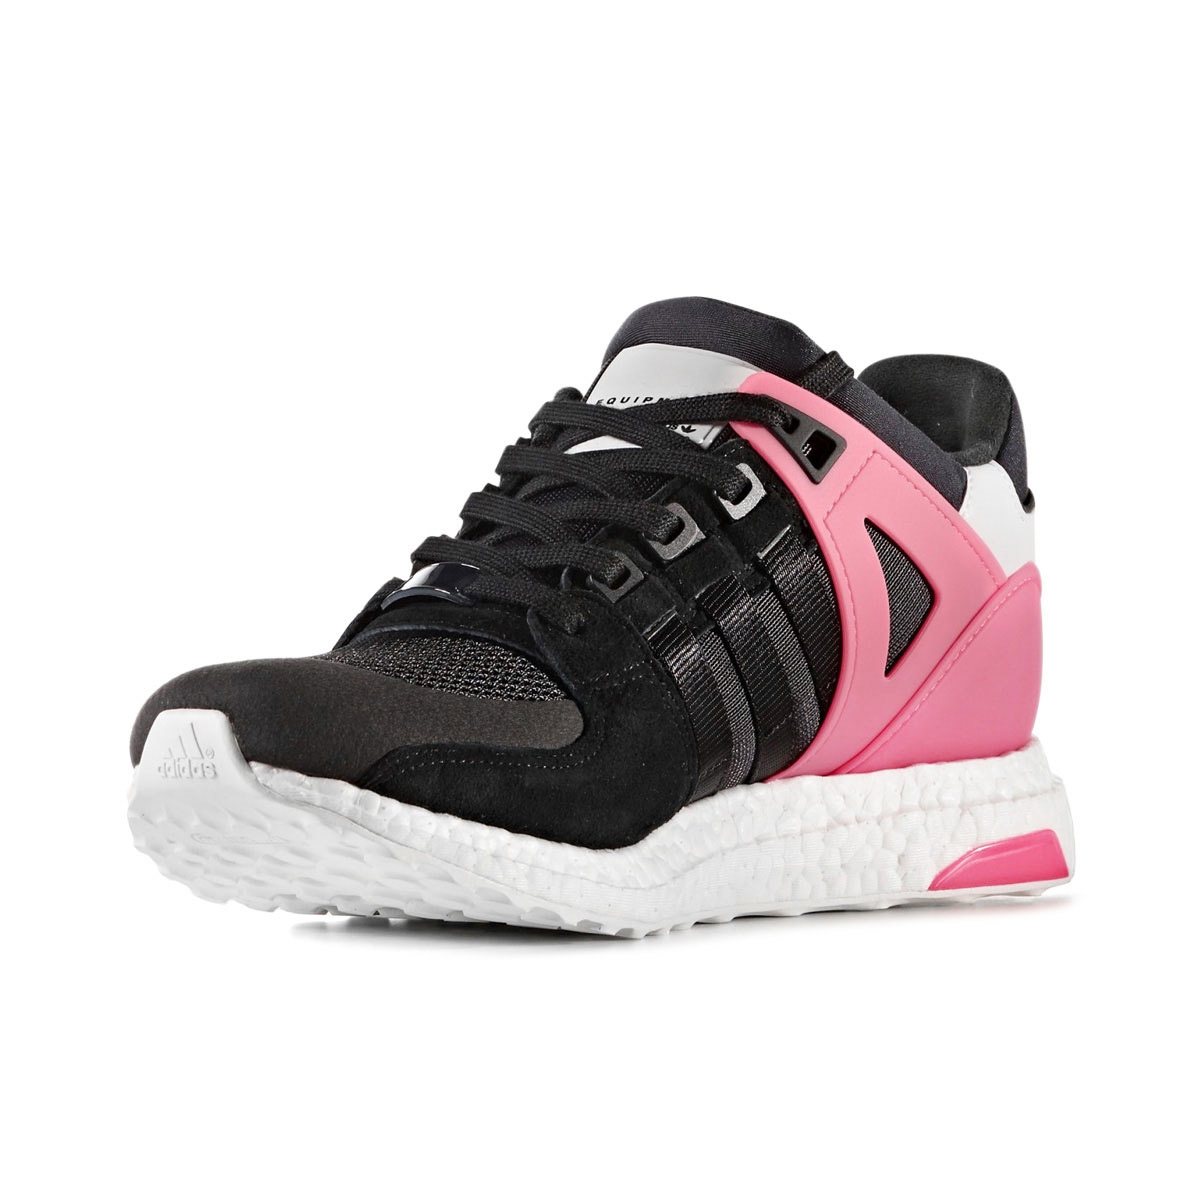 adidas Originals EQT SUPPORT ULT (アディダス EQT サポート ULT )(Core Black/Core Black/Turbo)【メンズ スニーカー】17SS-S